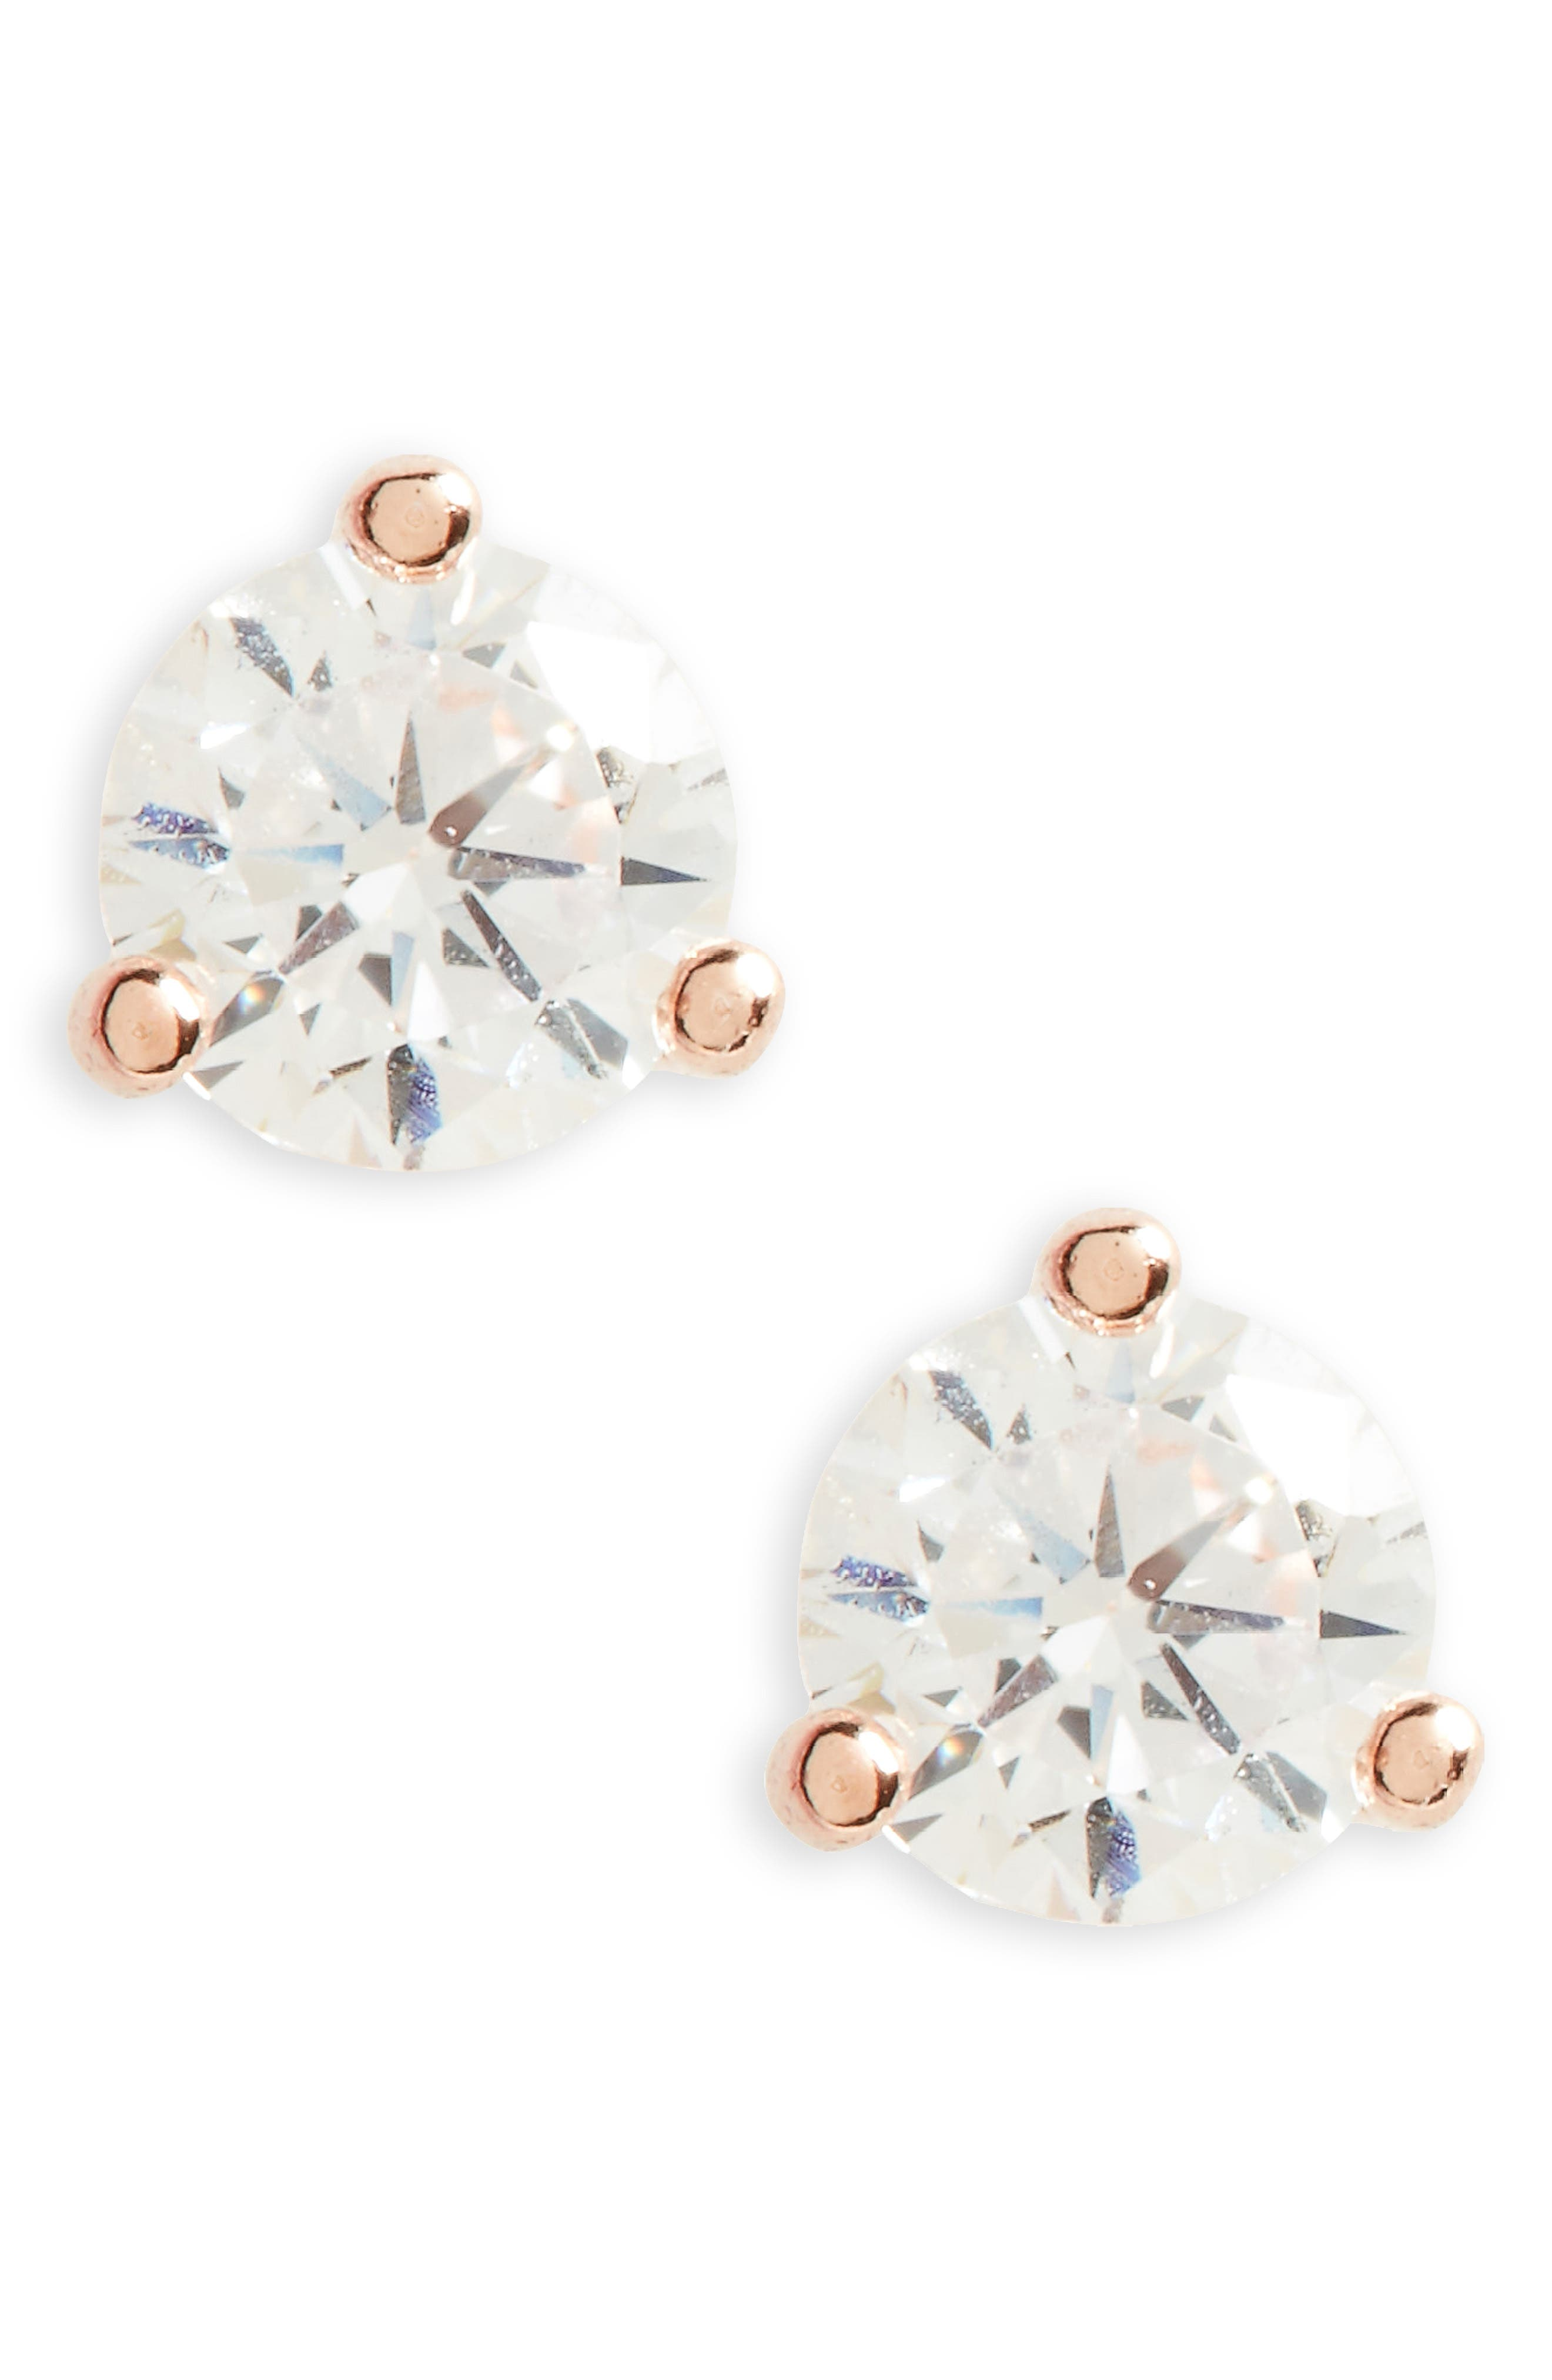 NORDSTROM, 0.25ct tw Cubic Zirconia Stud Earrings, Main thumbnail 1, color, CLEAR- ROSE GOLD